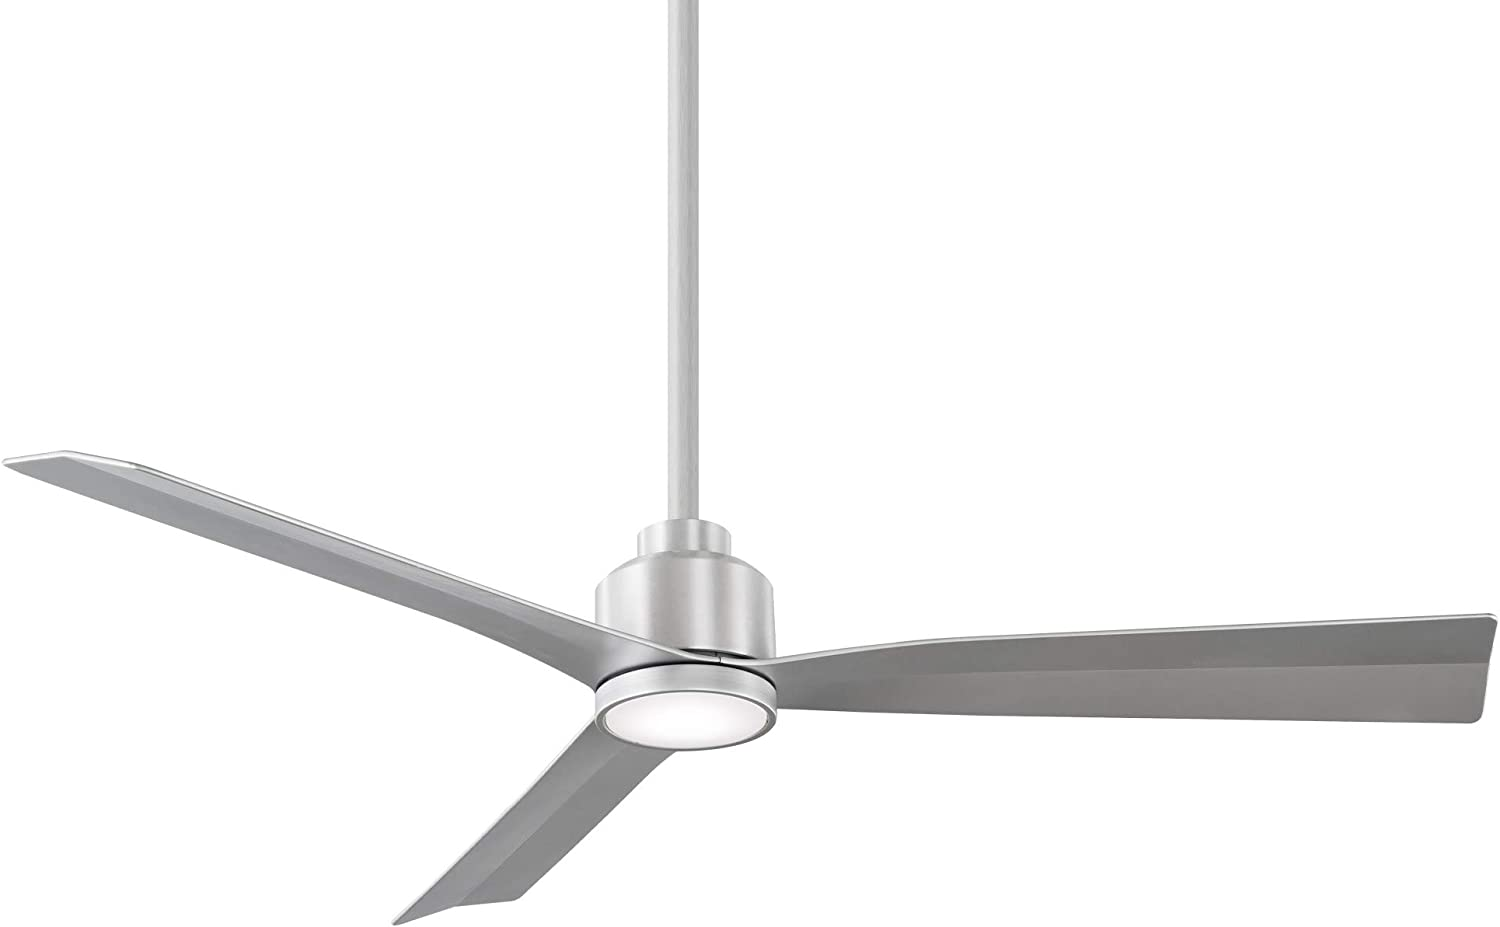 Clean Indoor/Outdoor 3-Blade Smart Compatible Ceiling Fan 52in Brushed Aluminum with 3000K LED Light Kit and Remote Control with Wall Cradle. Works with iOS/Android, Alexa, and Google Assistant.